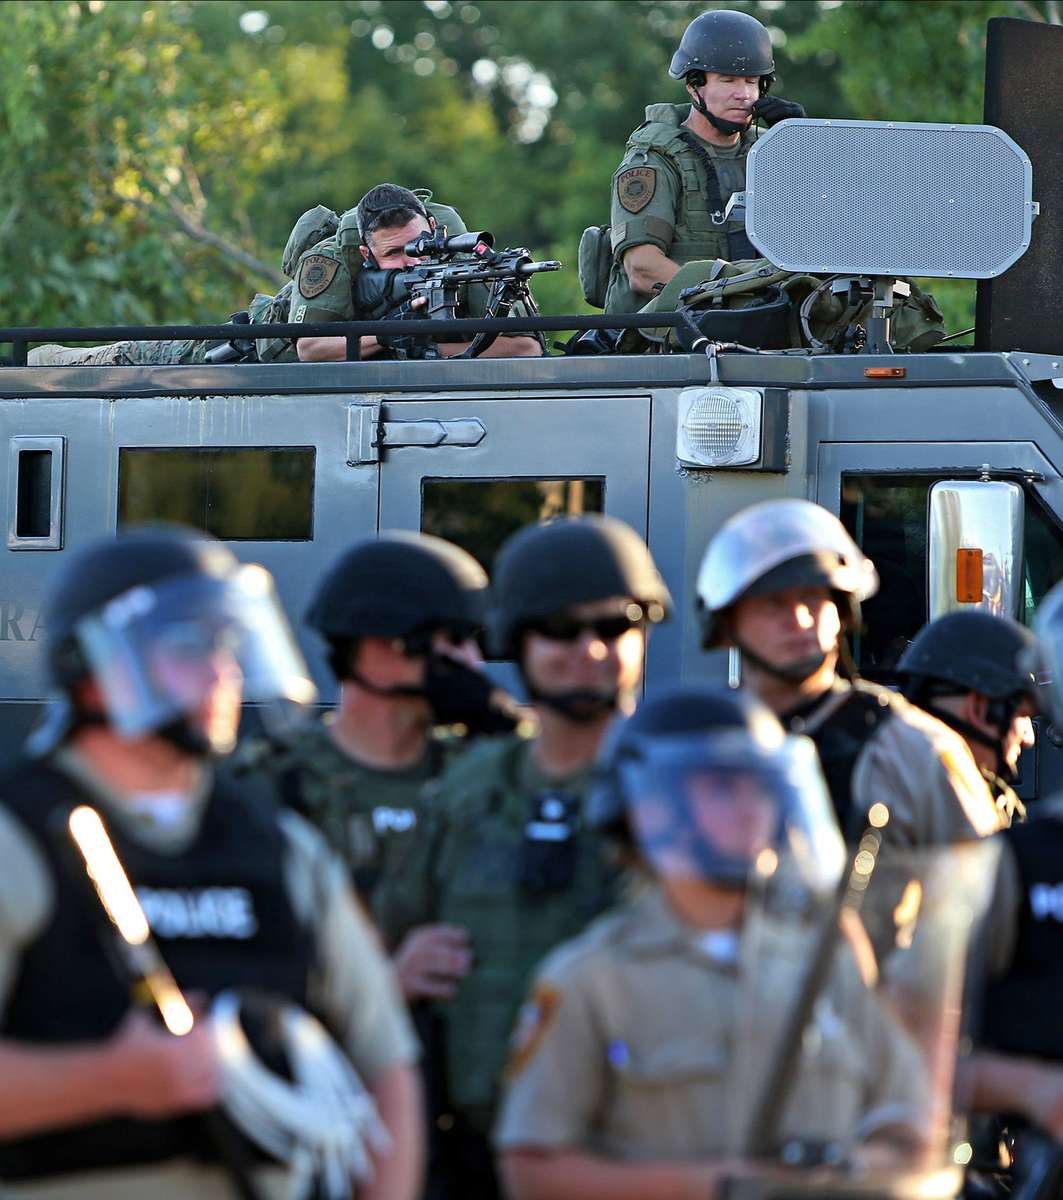 A police sharp shooter keeps an eye on protesters along W. Florissant Avenue near the QuikTrip that was burned down a few days earlier in Ferguson, Mo. on Tuesday, Aug. 12, 2014.